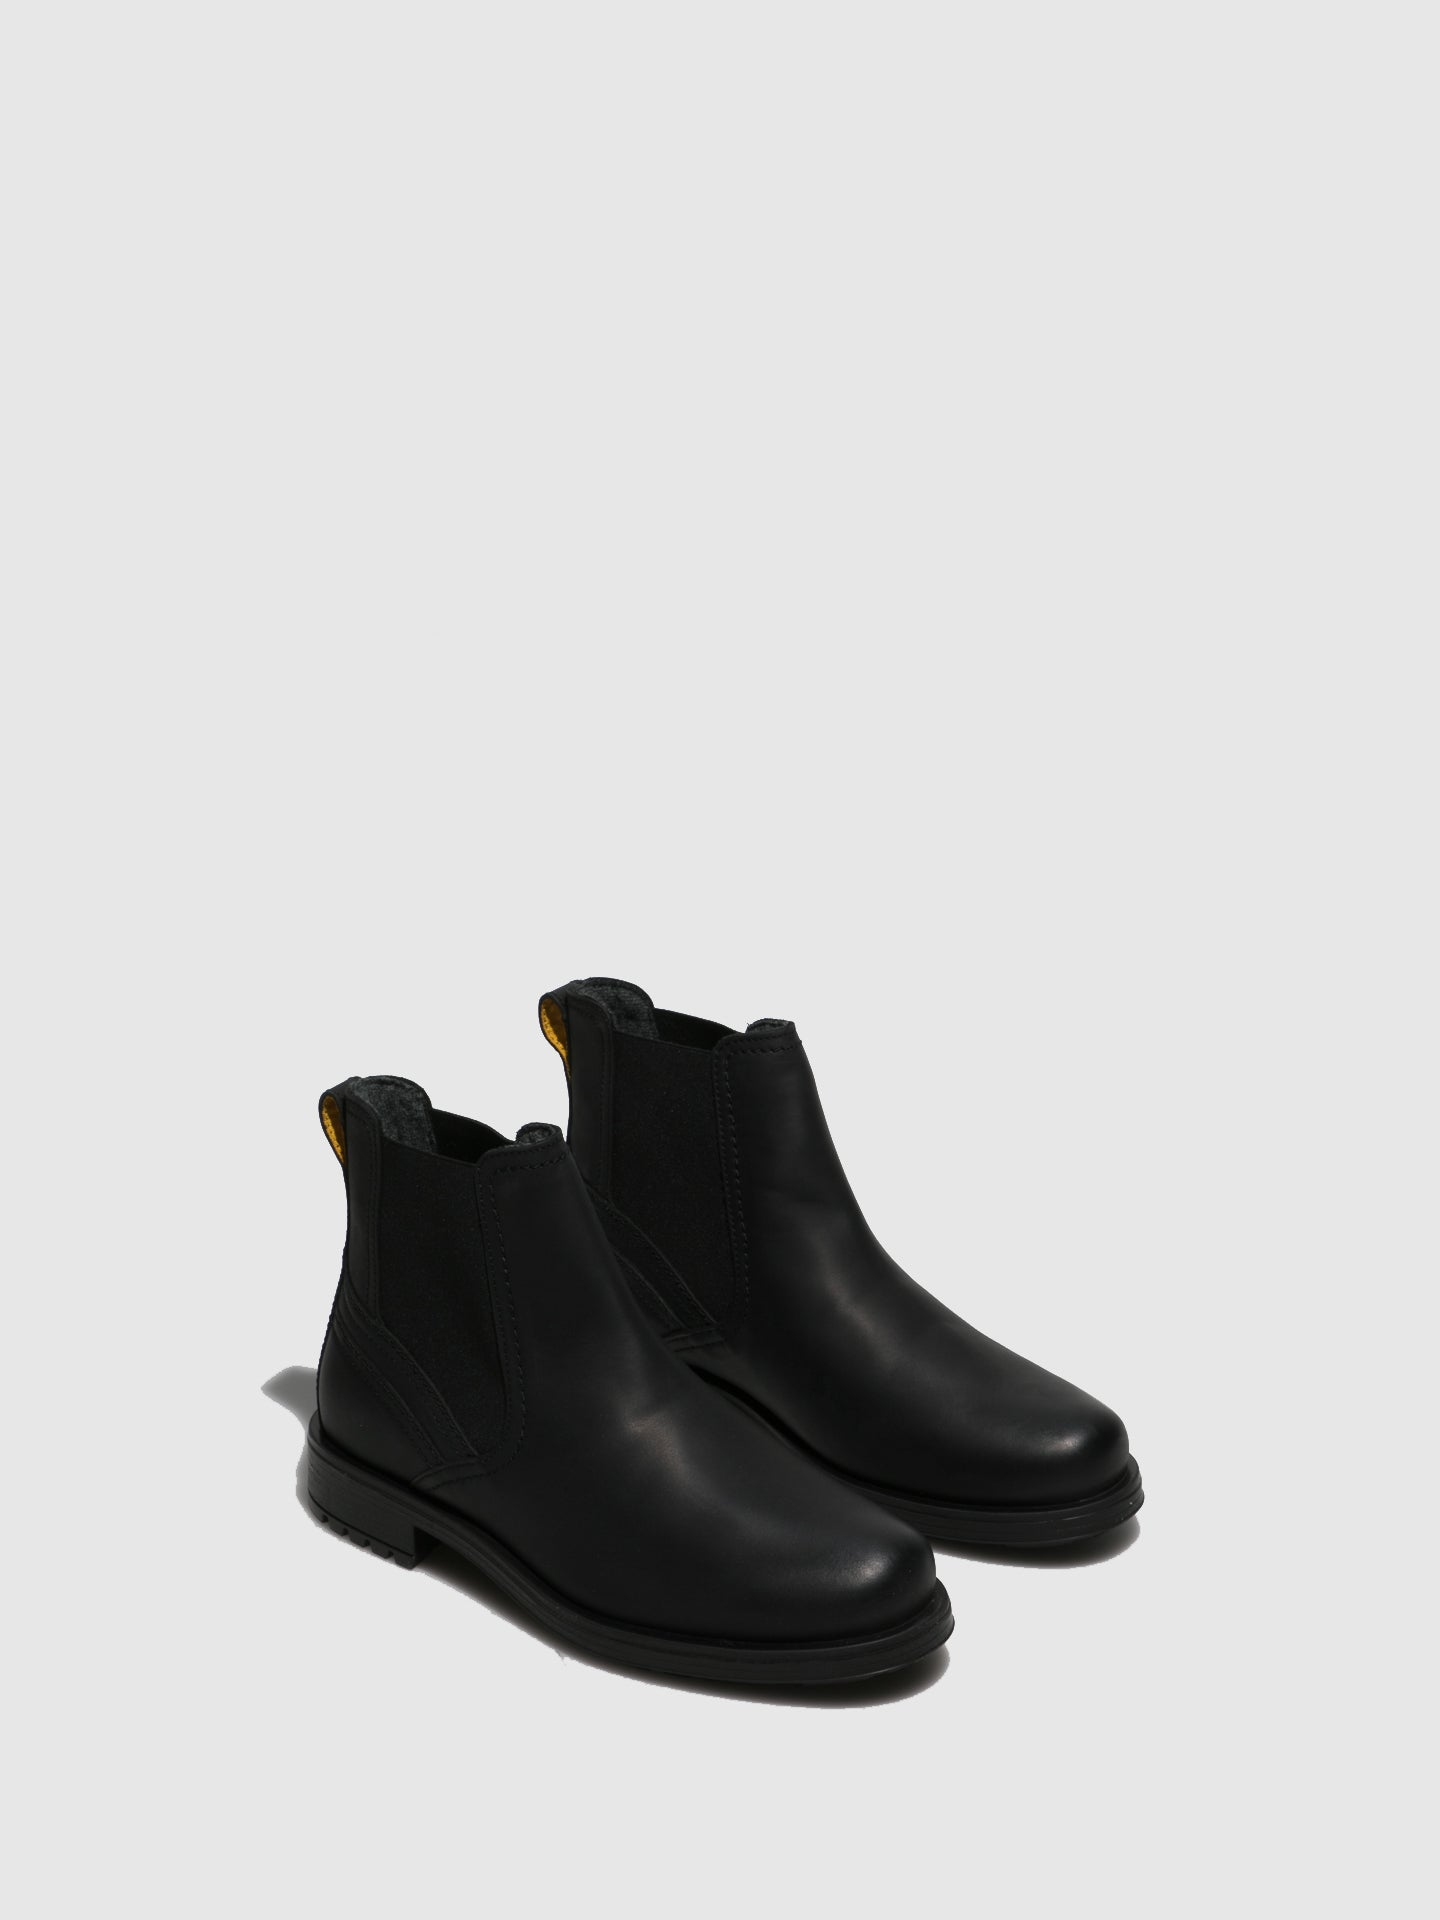 Camel Active Black Leather Chelsea Boots